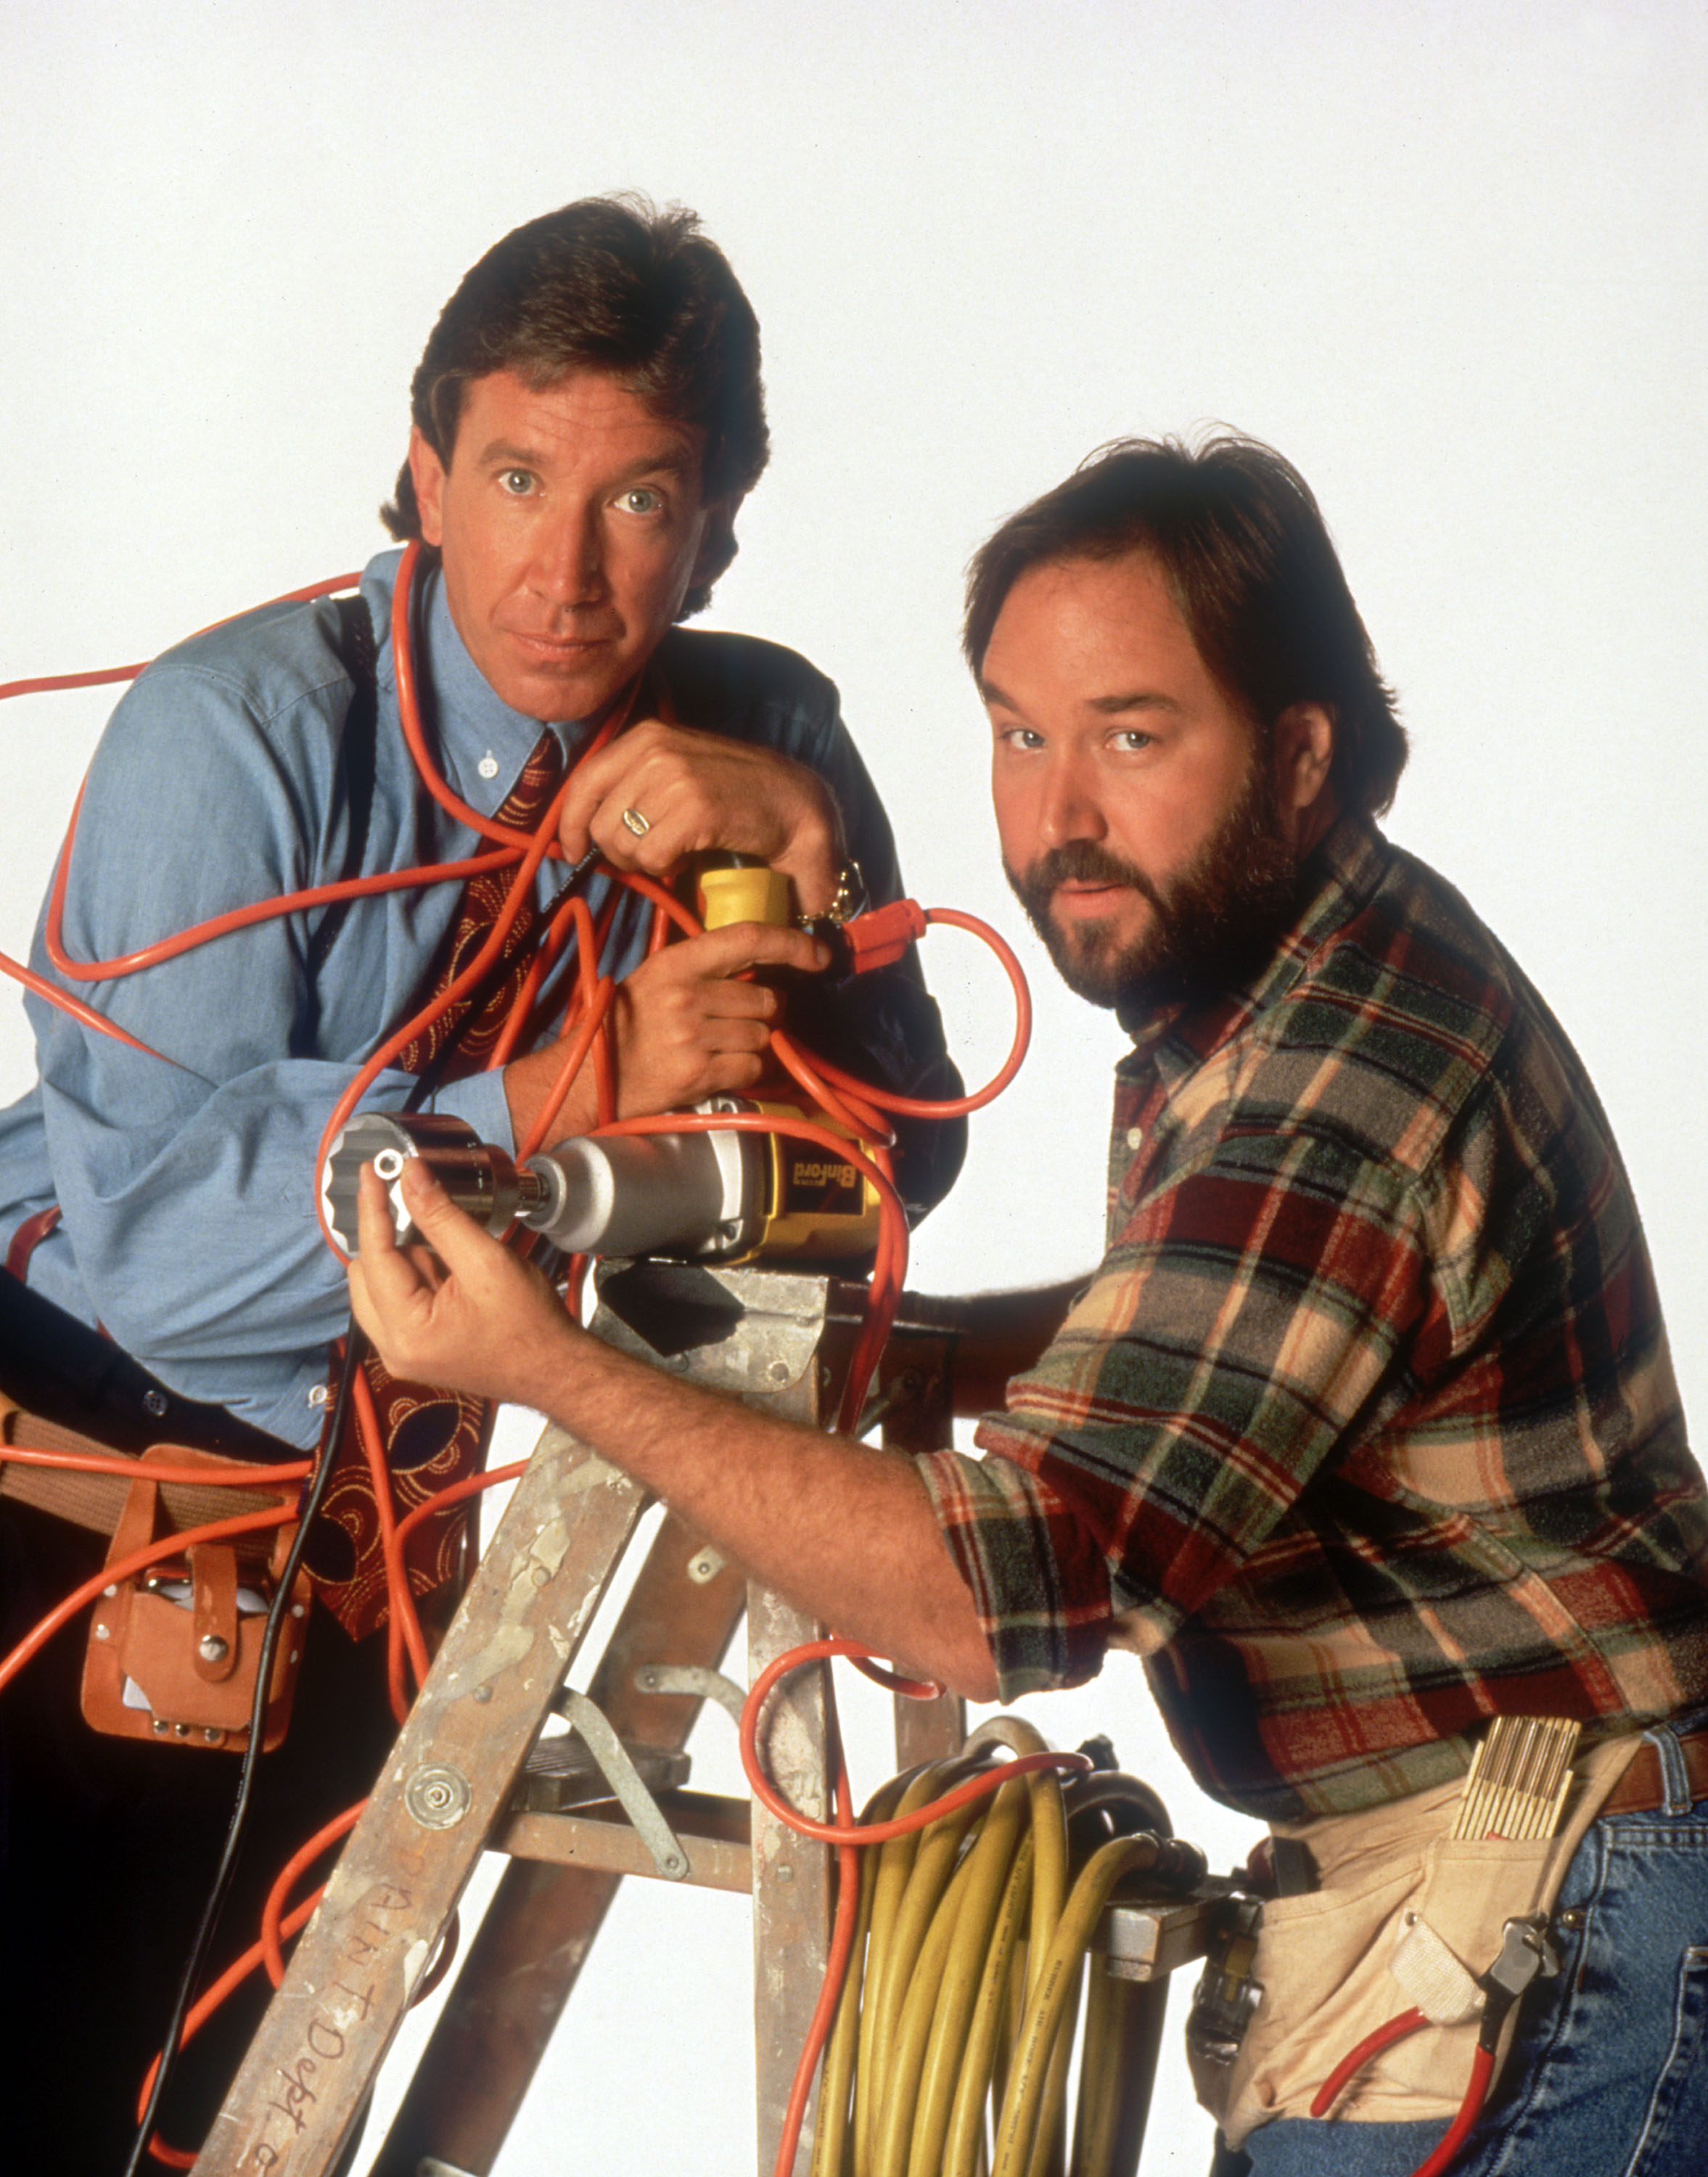 Tim-Al-home-improvement-tv-show-33059707